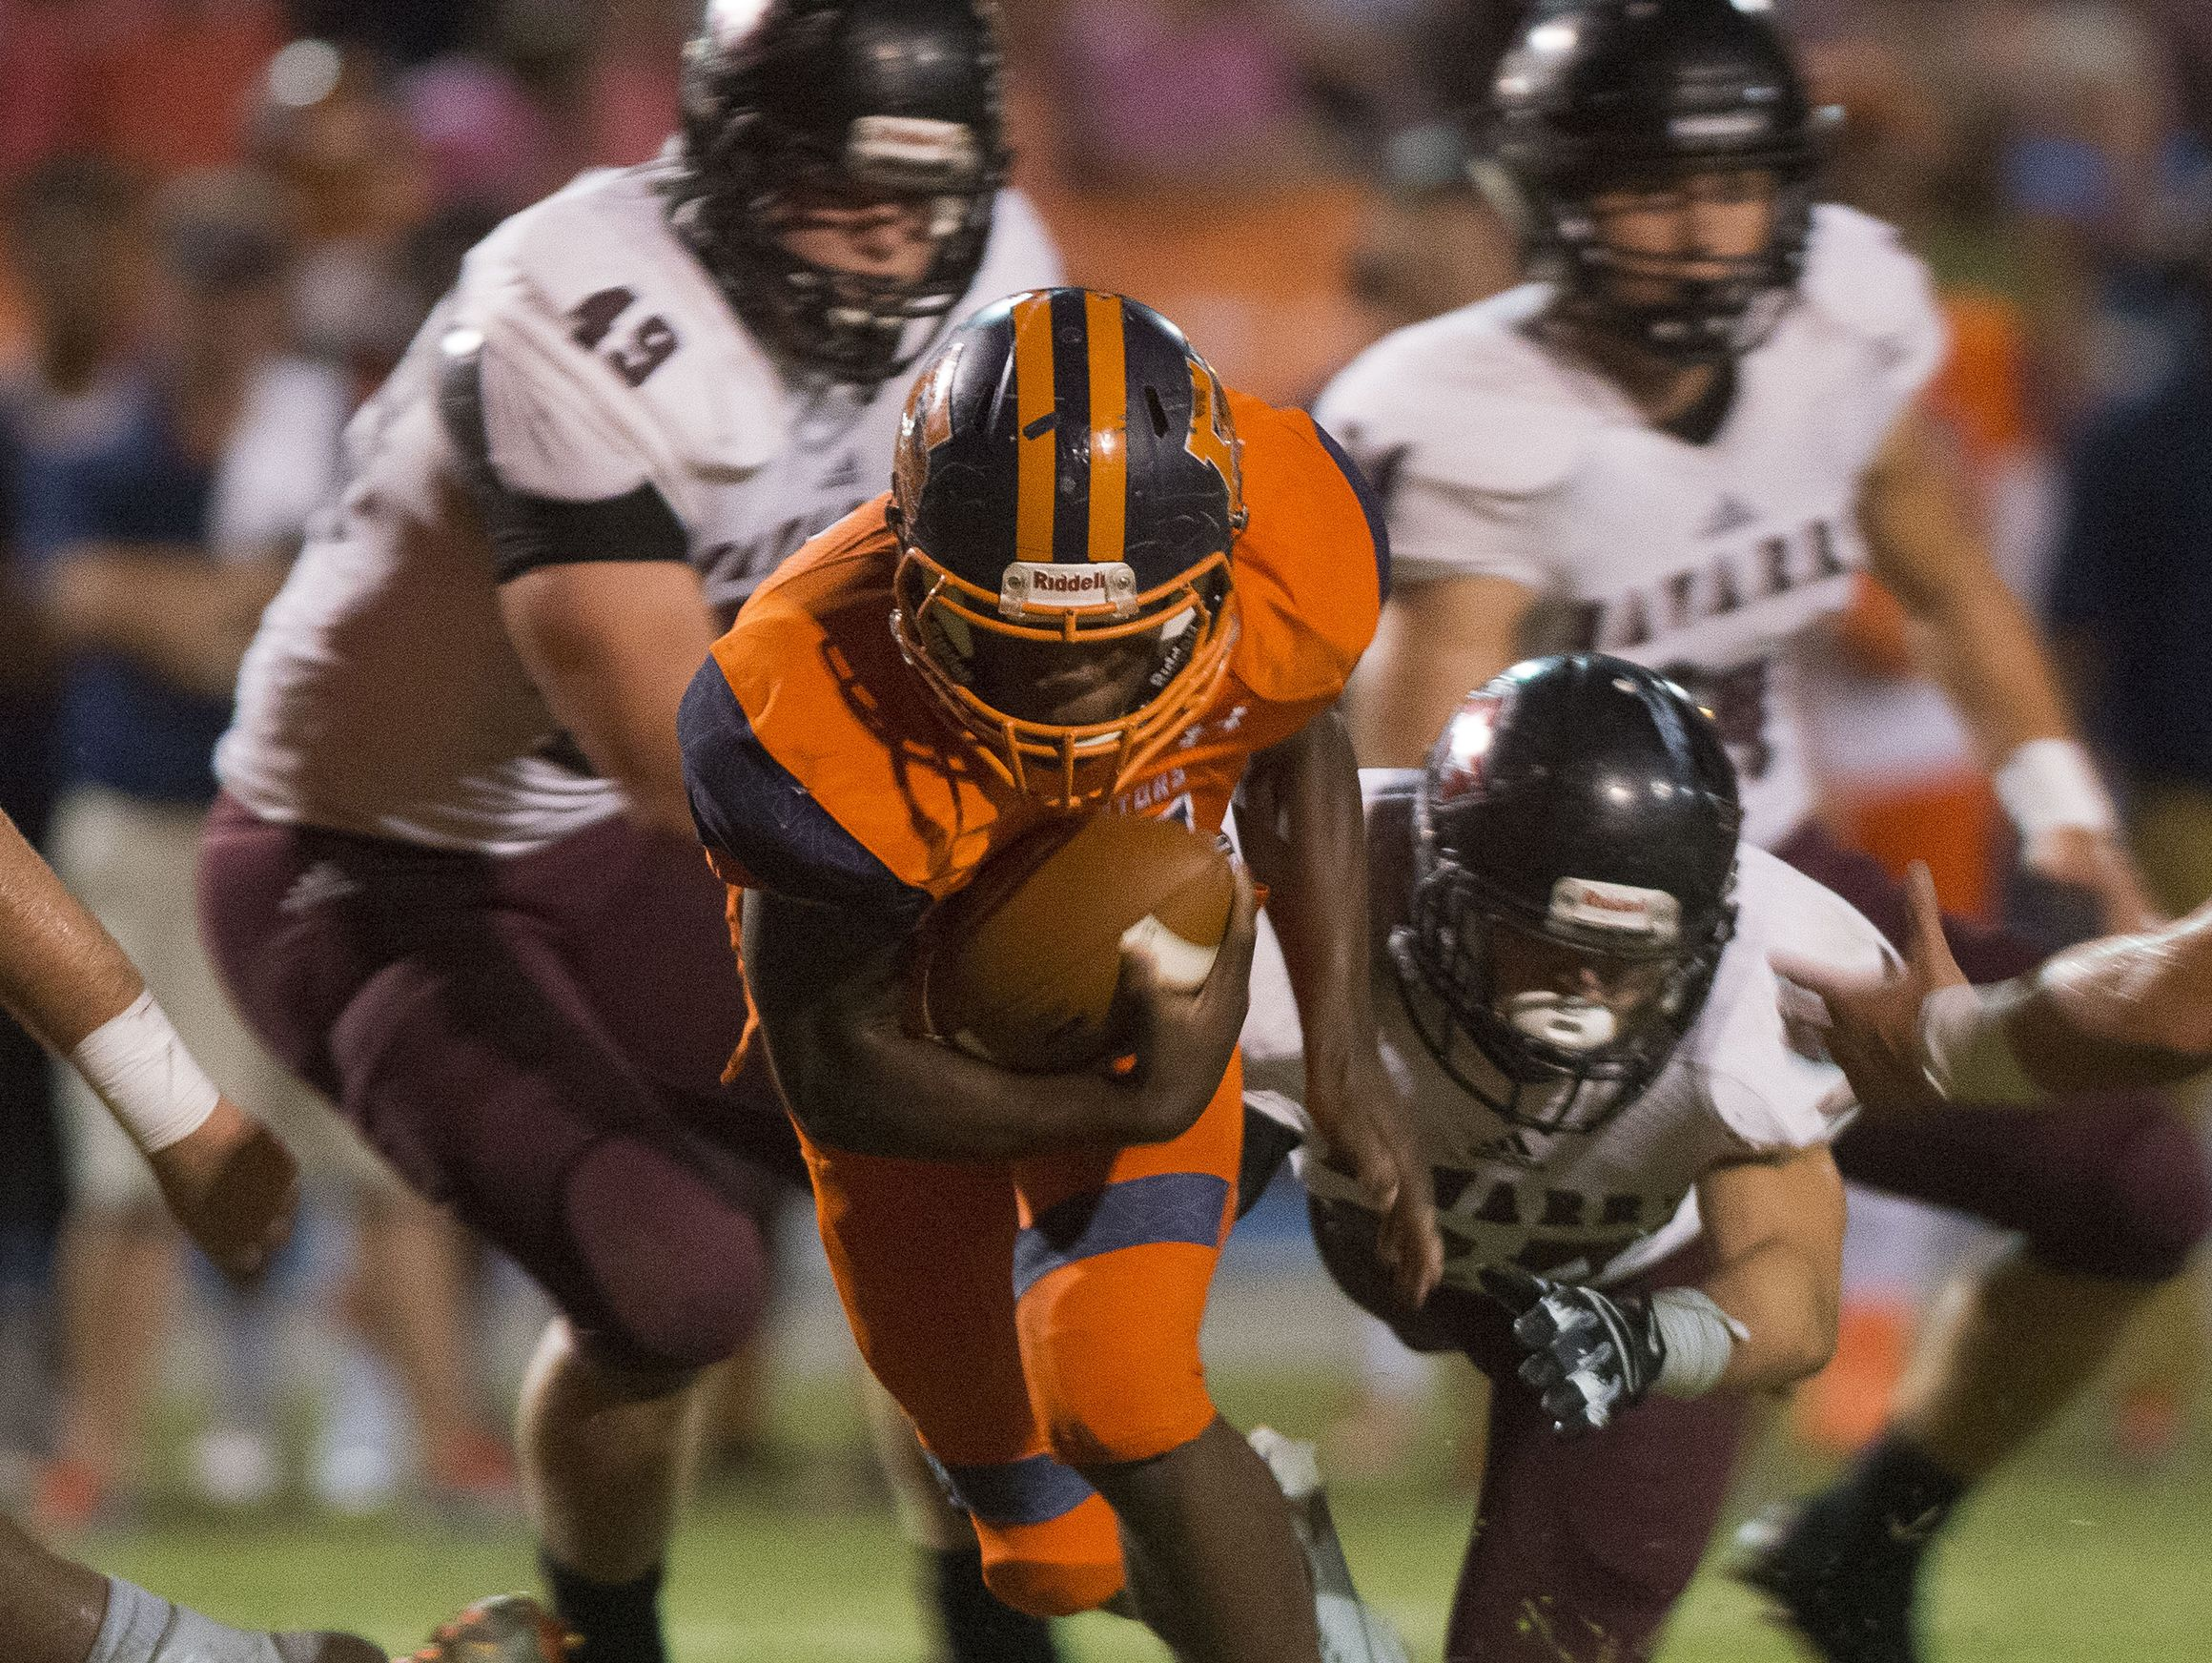 Escambia High School running back, Antonio Benjamin, (No. 3) breaks the tackles of the Navarre High School defense during Friday's game against the Raiders.